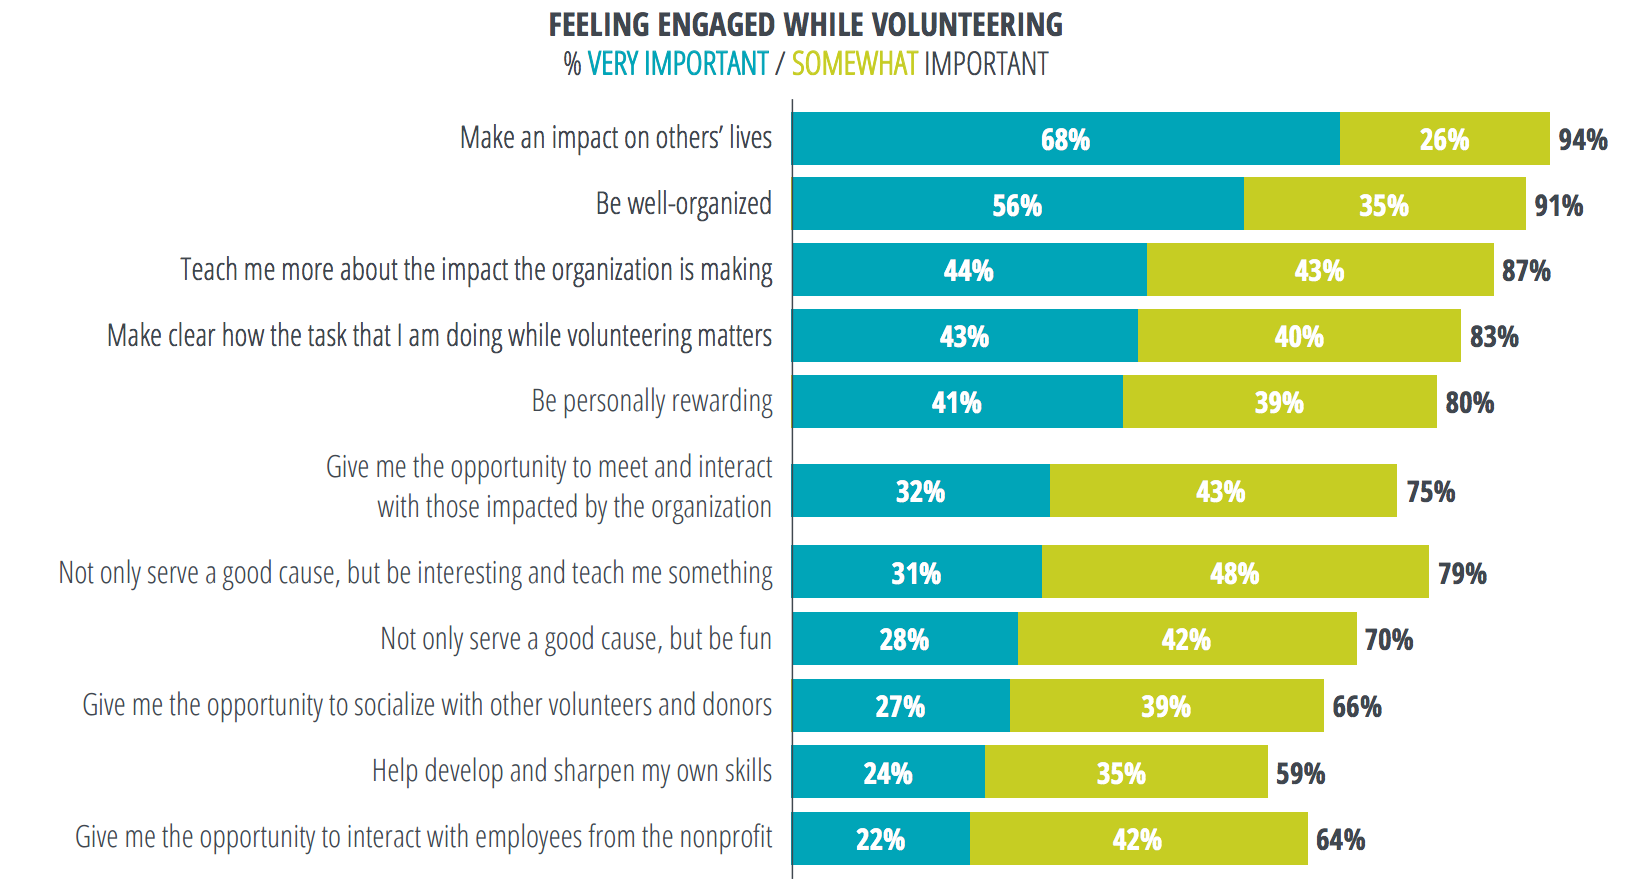 What makes individual feel valued when volunteering?